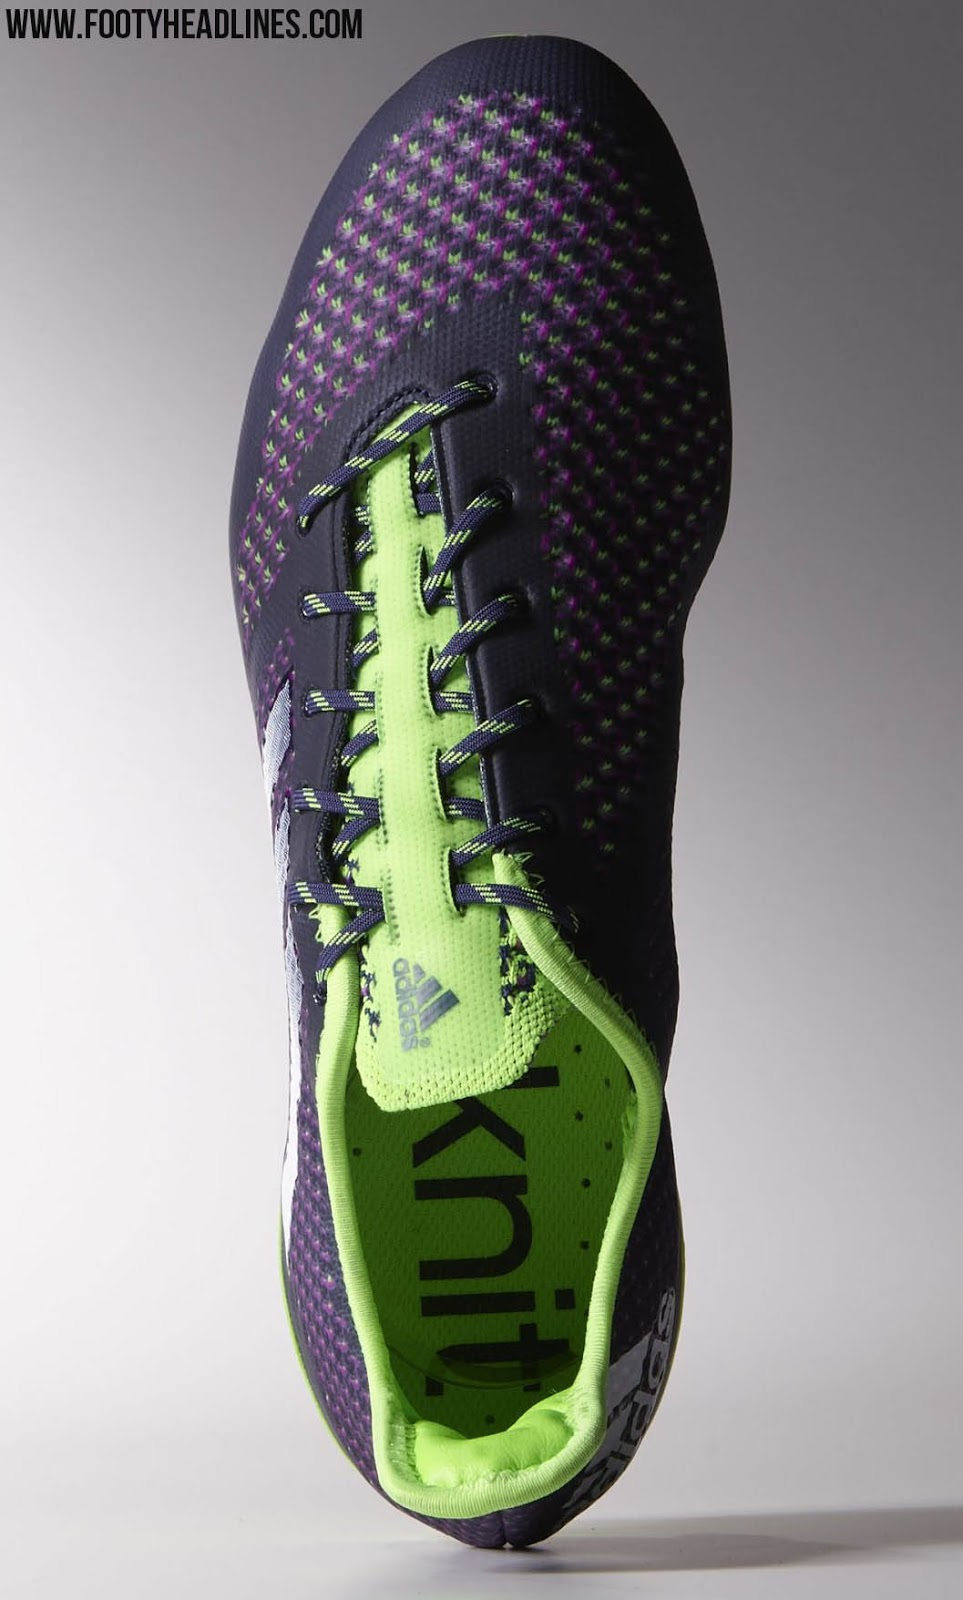 Adidas Shoes Limited Green